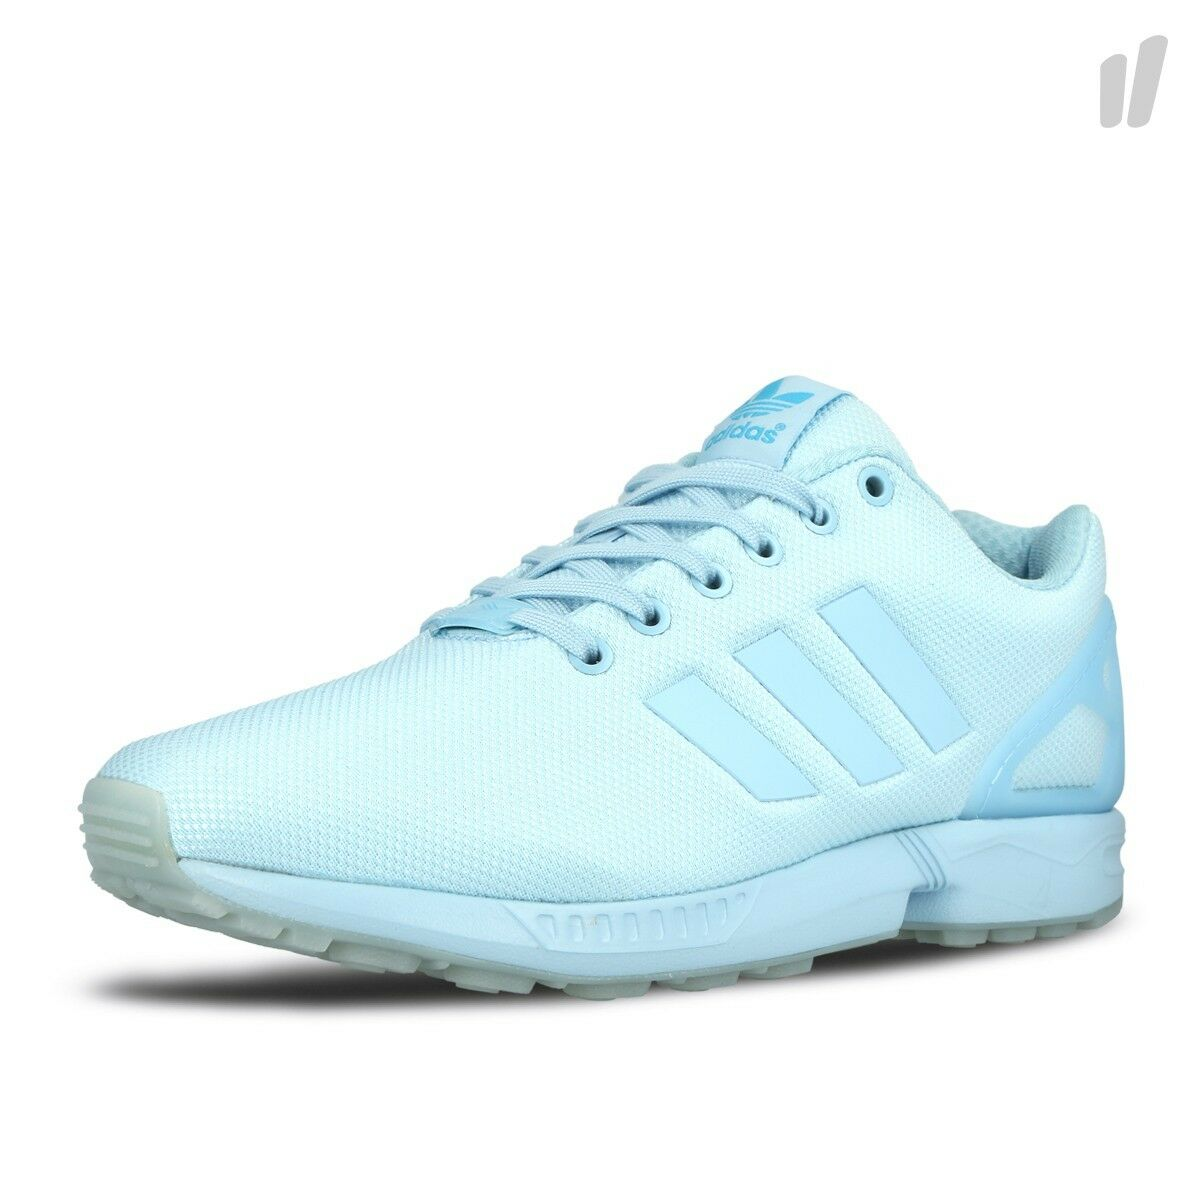 ADIDAS ZX FLUX LOW SNEAKERS RUNNING MEN SHOES AQ3100 LUSH blueE SIZE 10.5 NEW